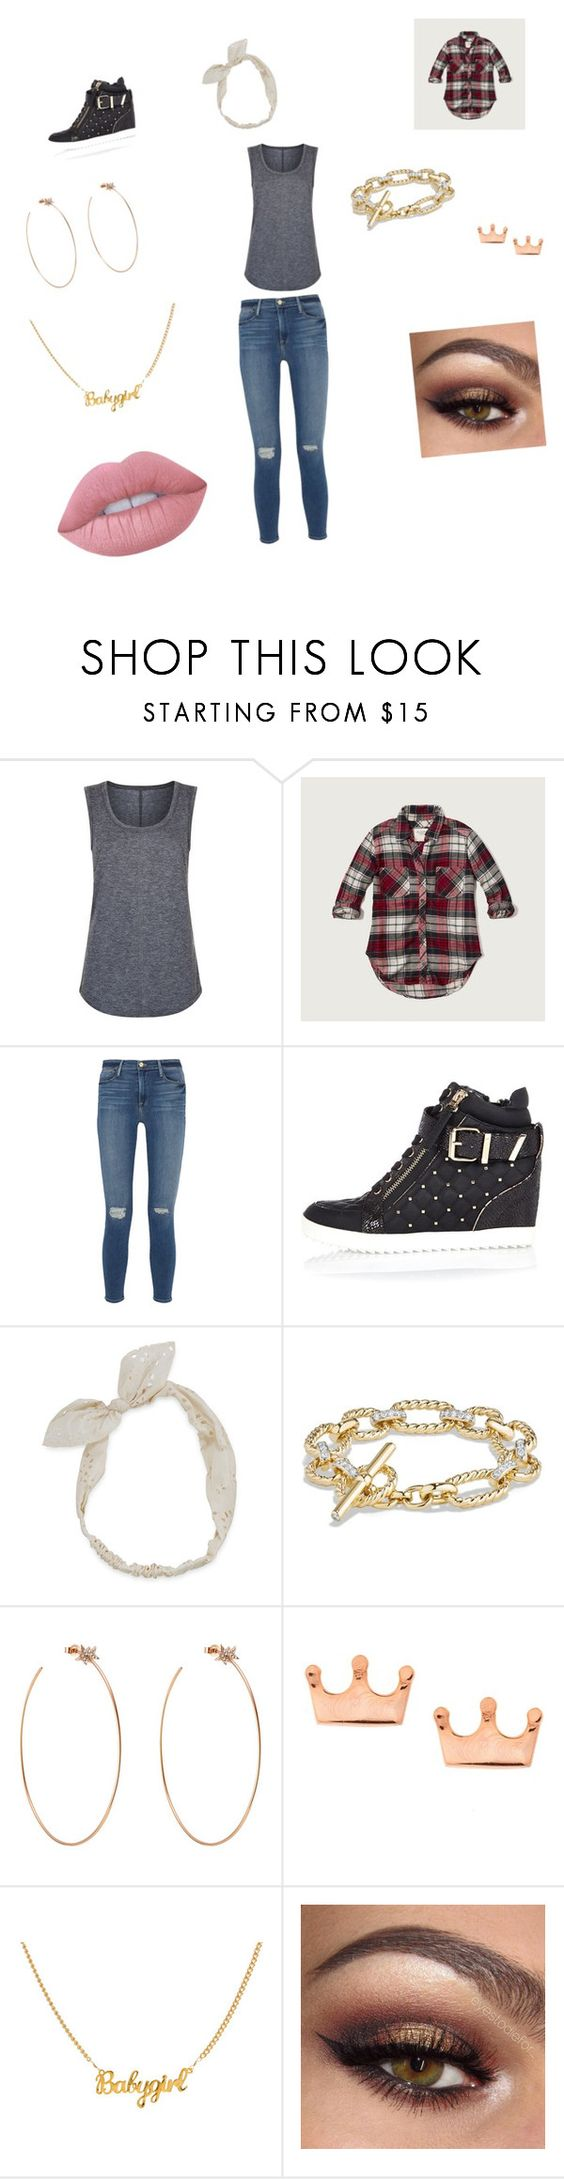 """nbjr"" by vyesica-yv on Polyvore featuring Elie Tahari, Abercrombie & Fitch, Frame Denim, River Island, Carole, David Yurman, Diane Kordas, Mminimal and Lime Crime"